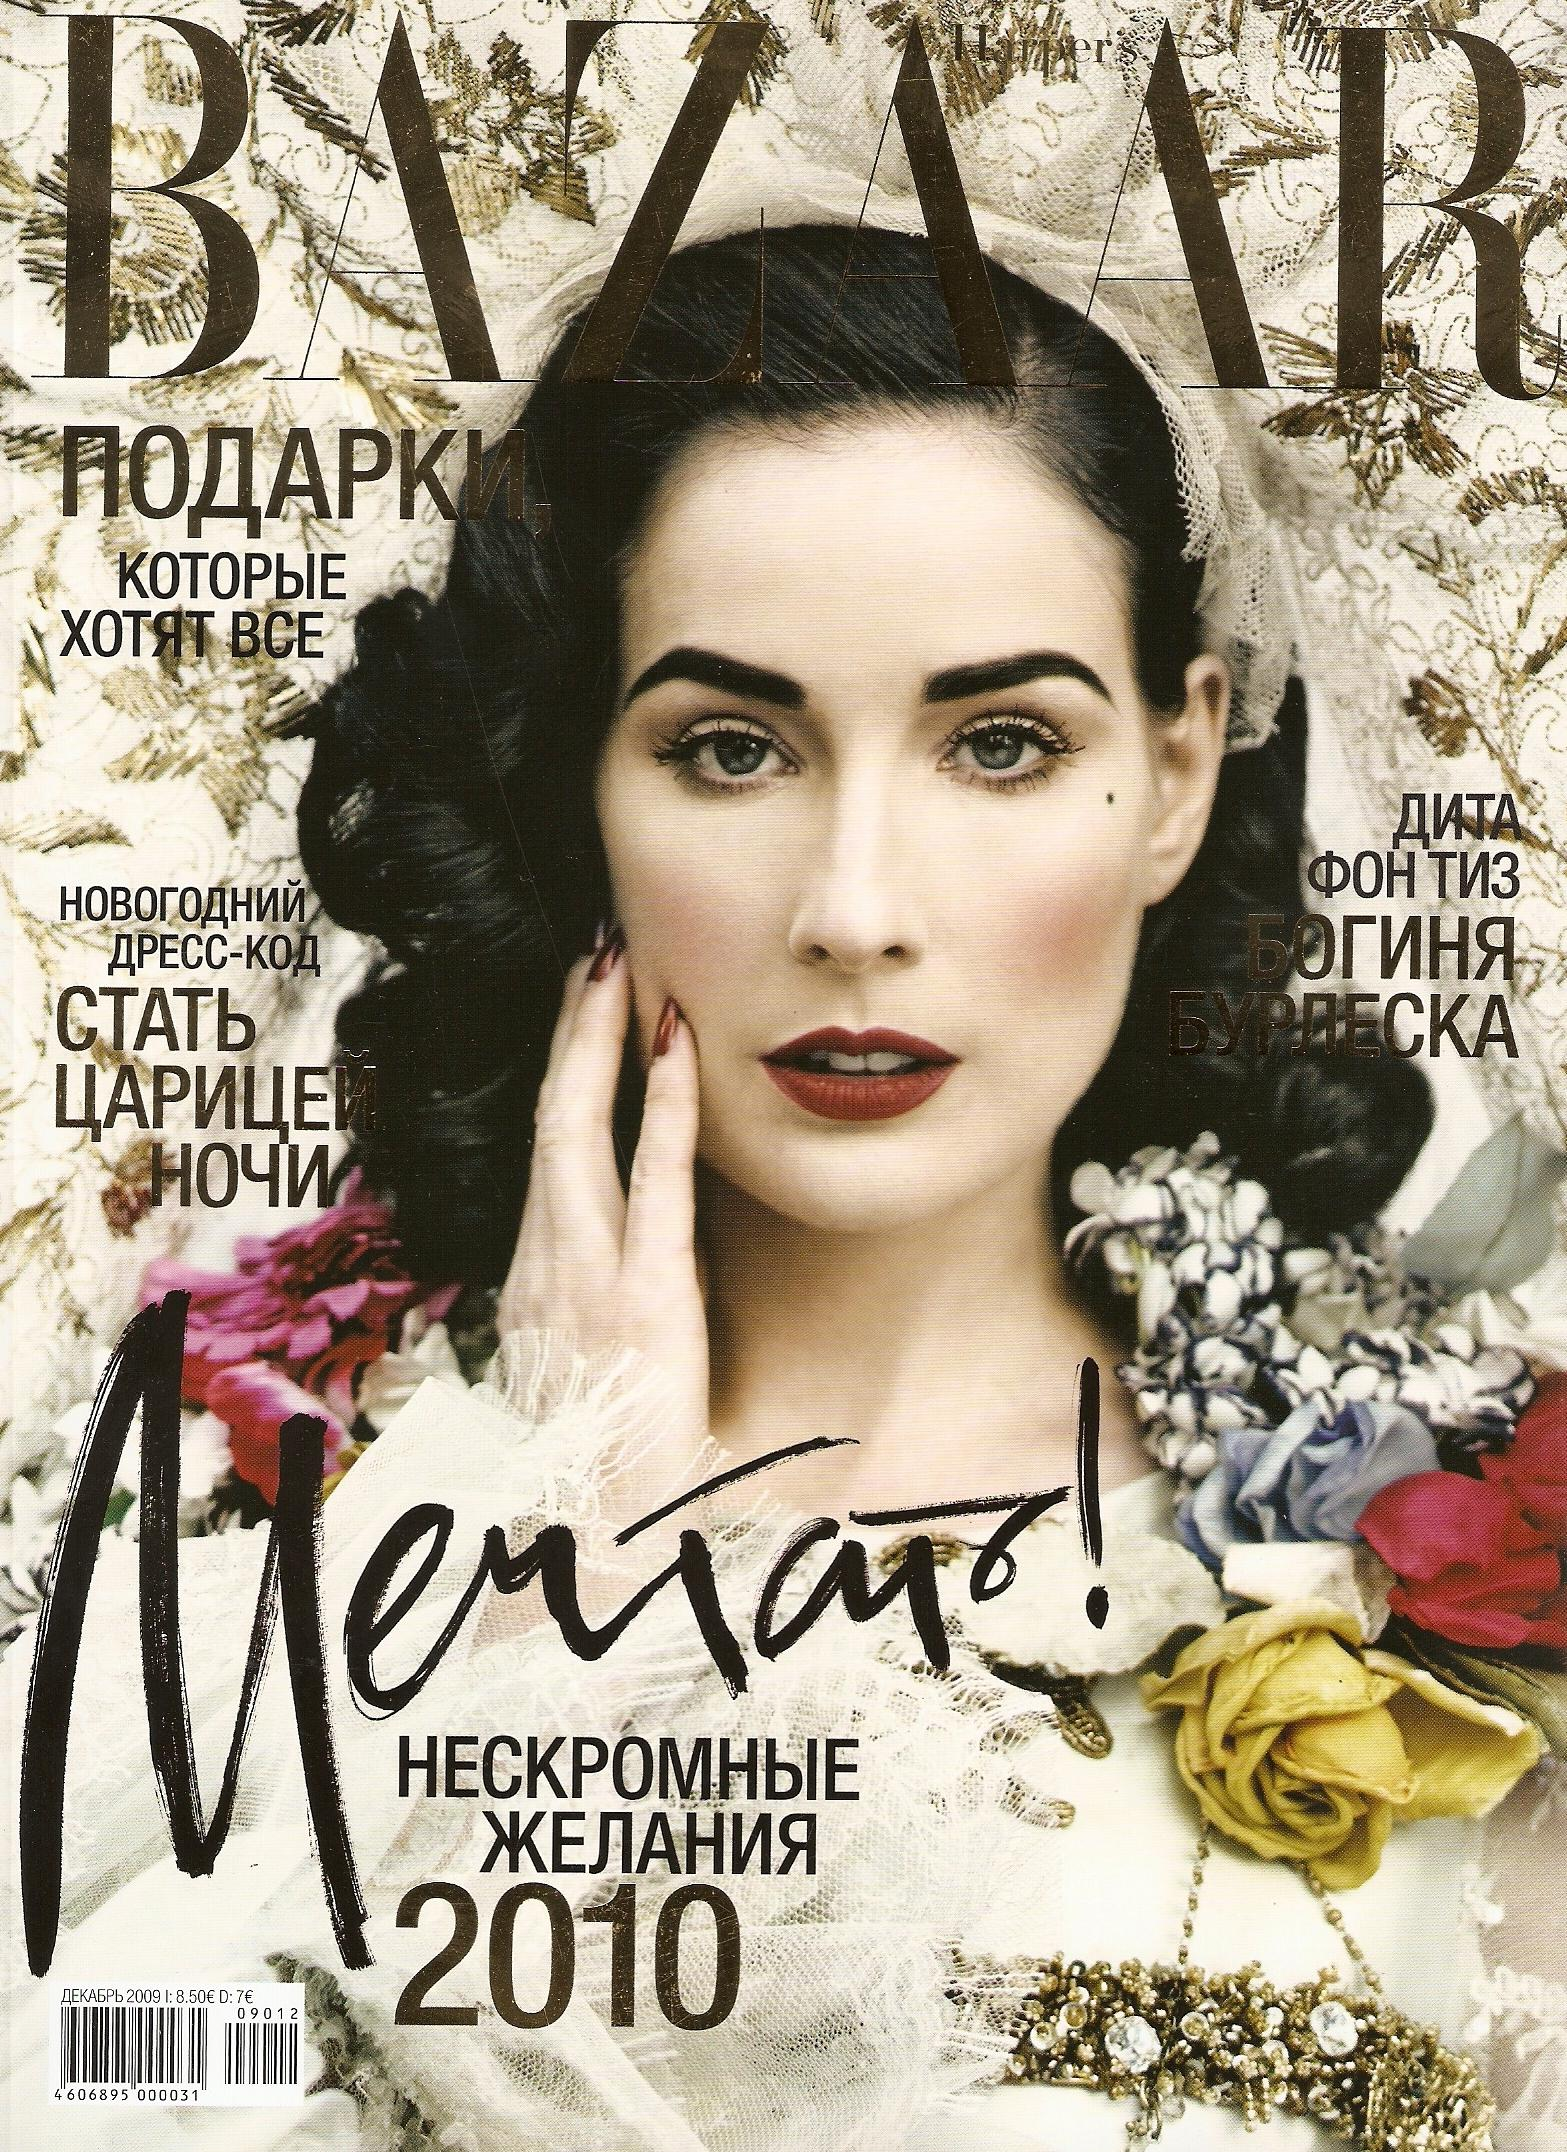 This again harpers bazaar russia reprints madonna x terry richardson cover